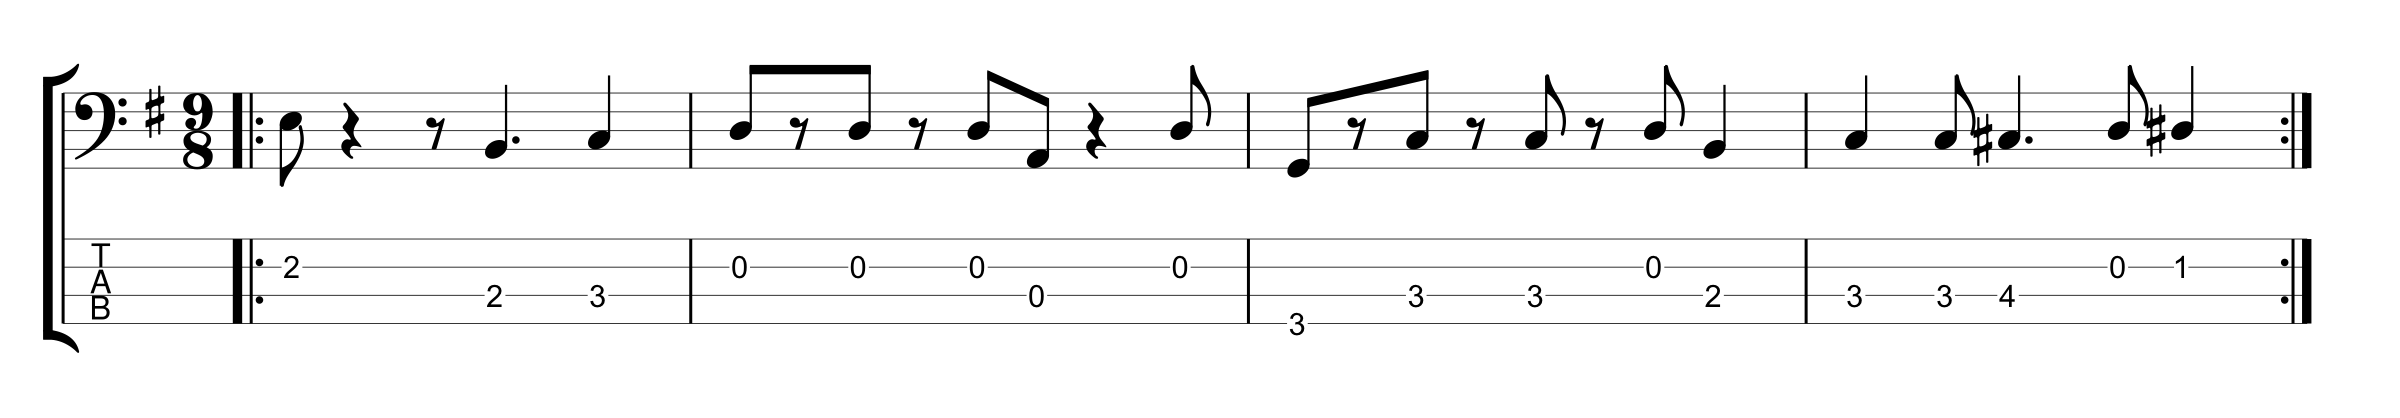 9/8 Time Signature Bass Groove Example 3